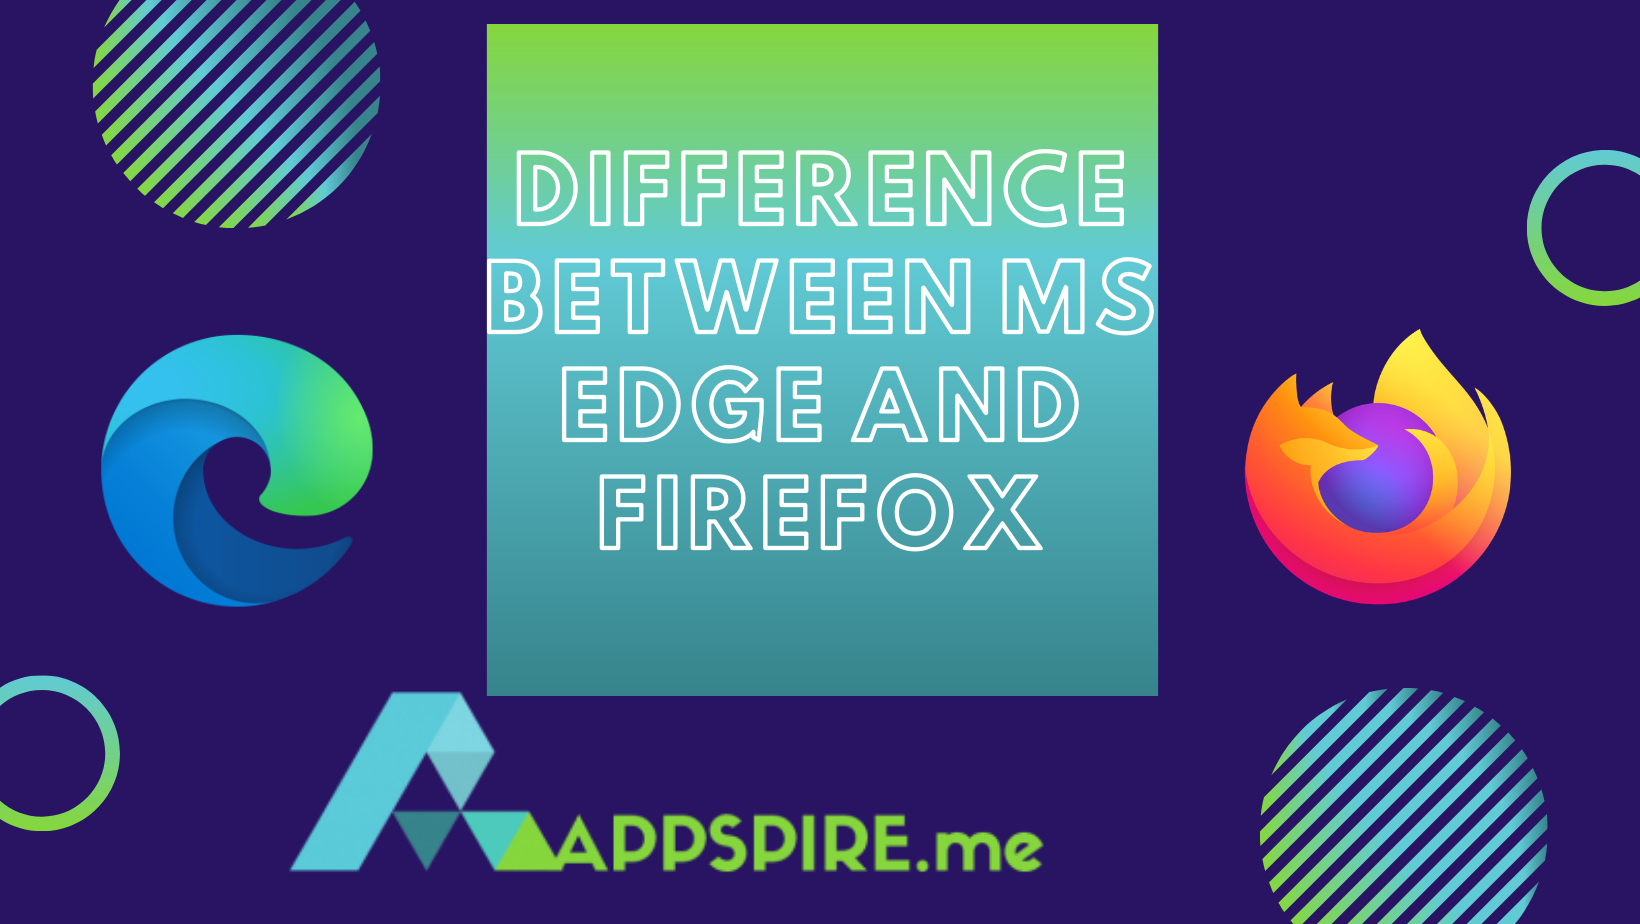 The Difference Between MS Edge and Firefox